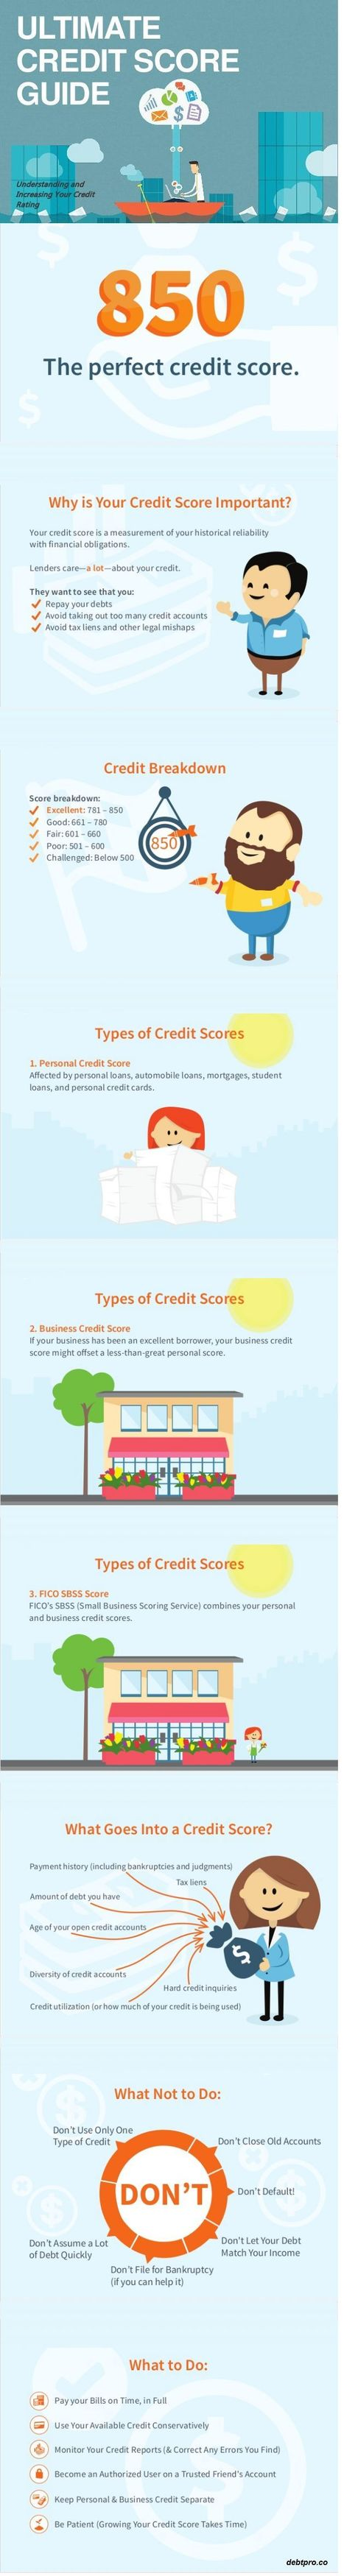 How To Improve Your Credit & Raise FICO Score: An Expert Guide + INSTRUCTO-GRAPHICS | Health & Digital Tech Magazine - 2017 | Scoop.it